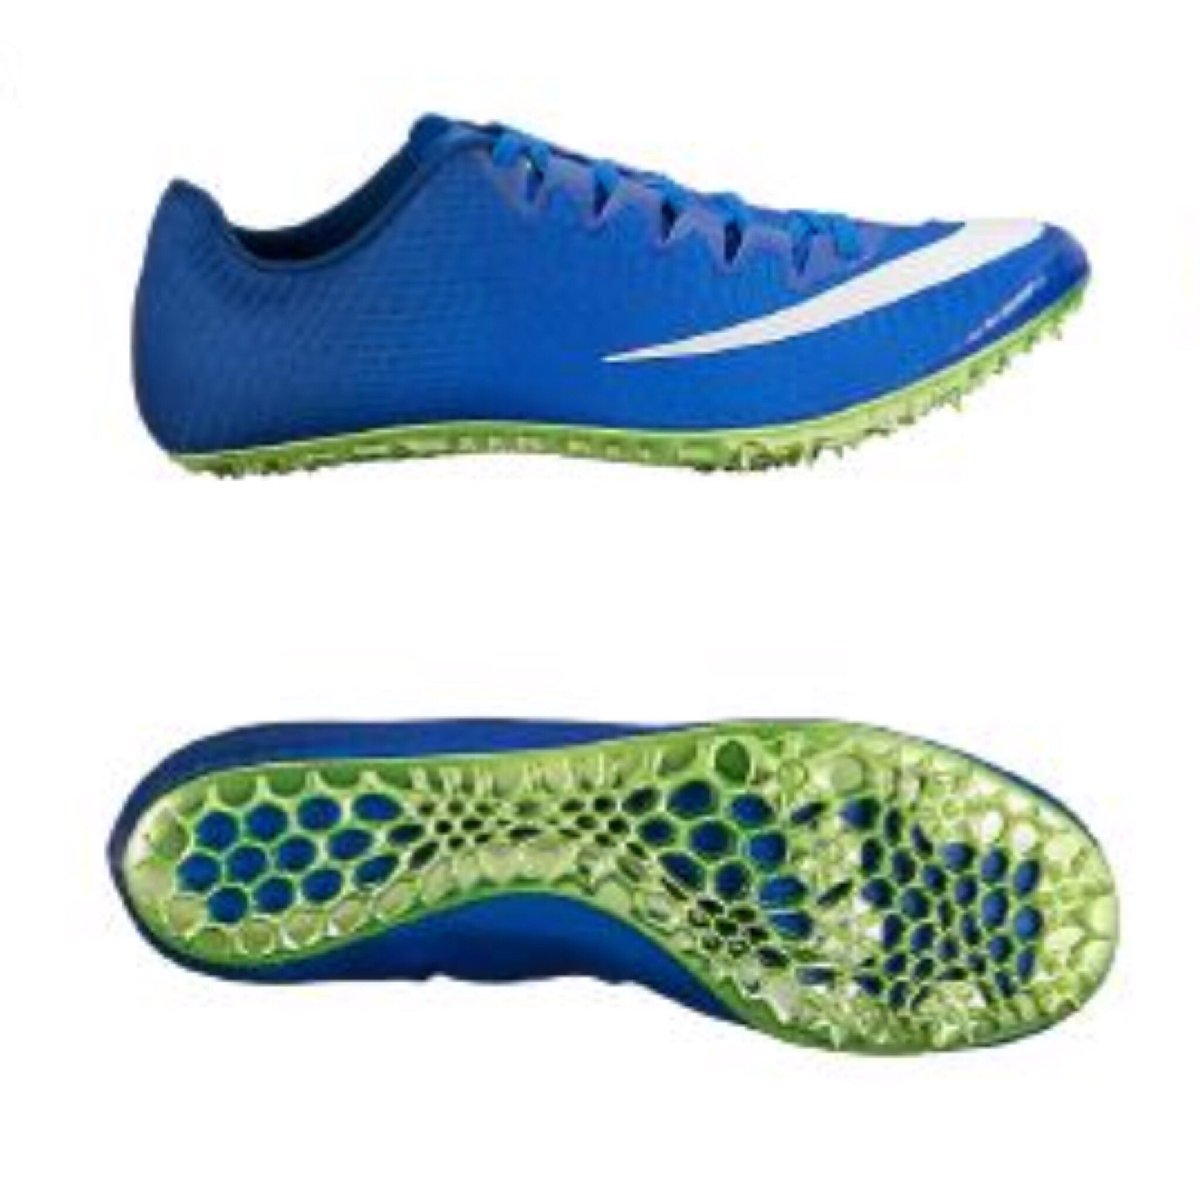 Nike men's zoom superfly elite track and field shoes. nike superfly elite  spikes blue